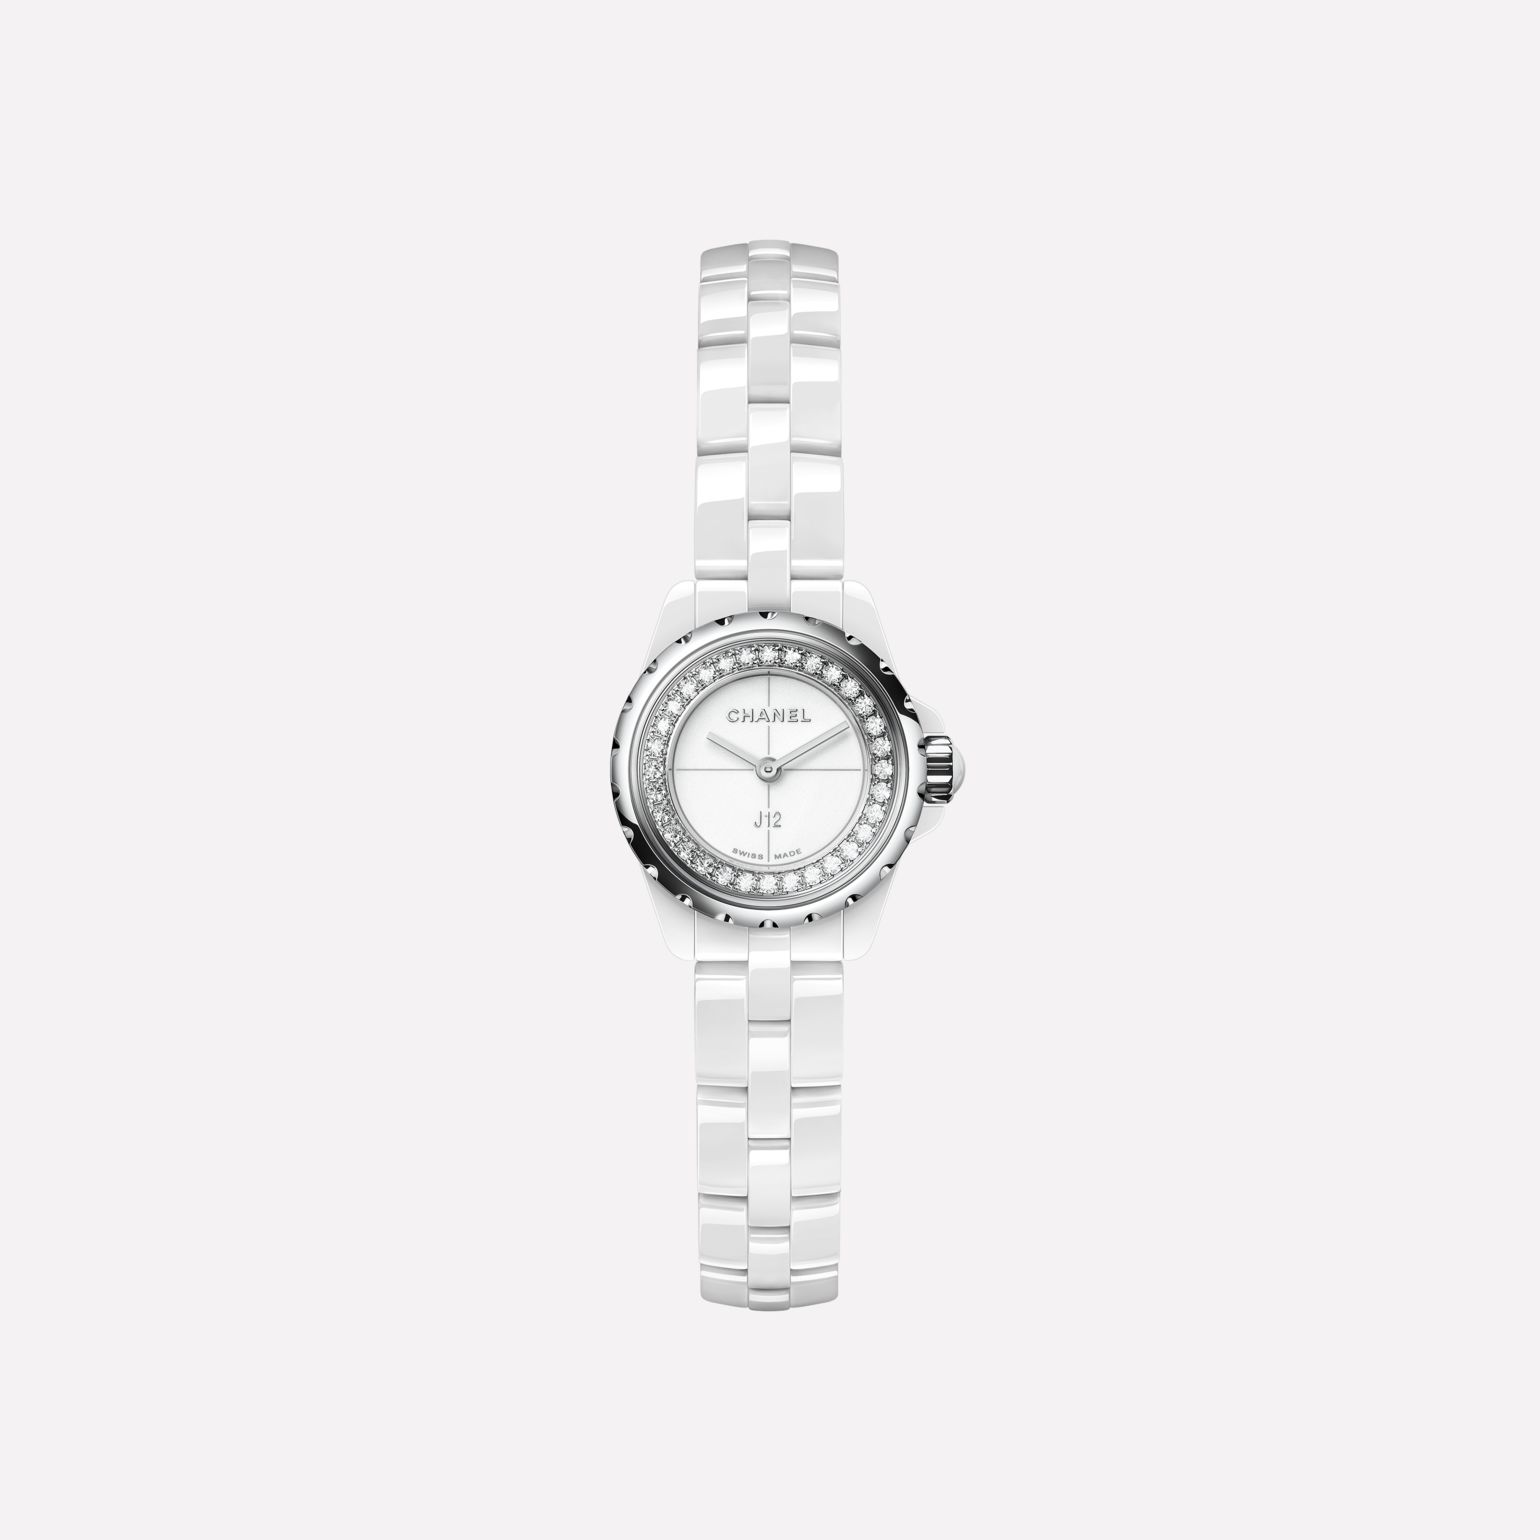 J12∙XS Watch, 19 mm White highly-resistant ceramic and steel, brilliant-cut diamond flange